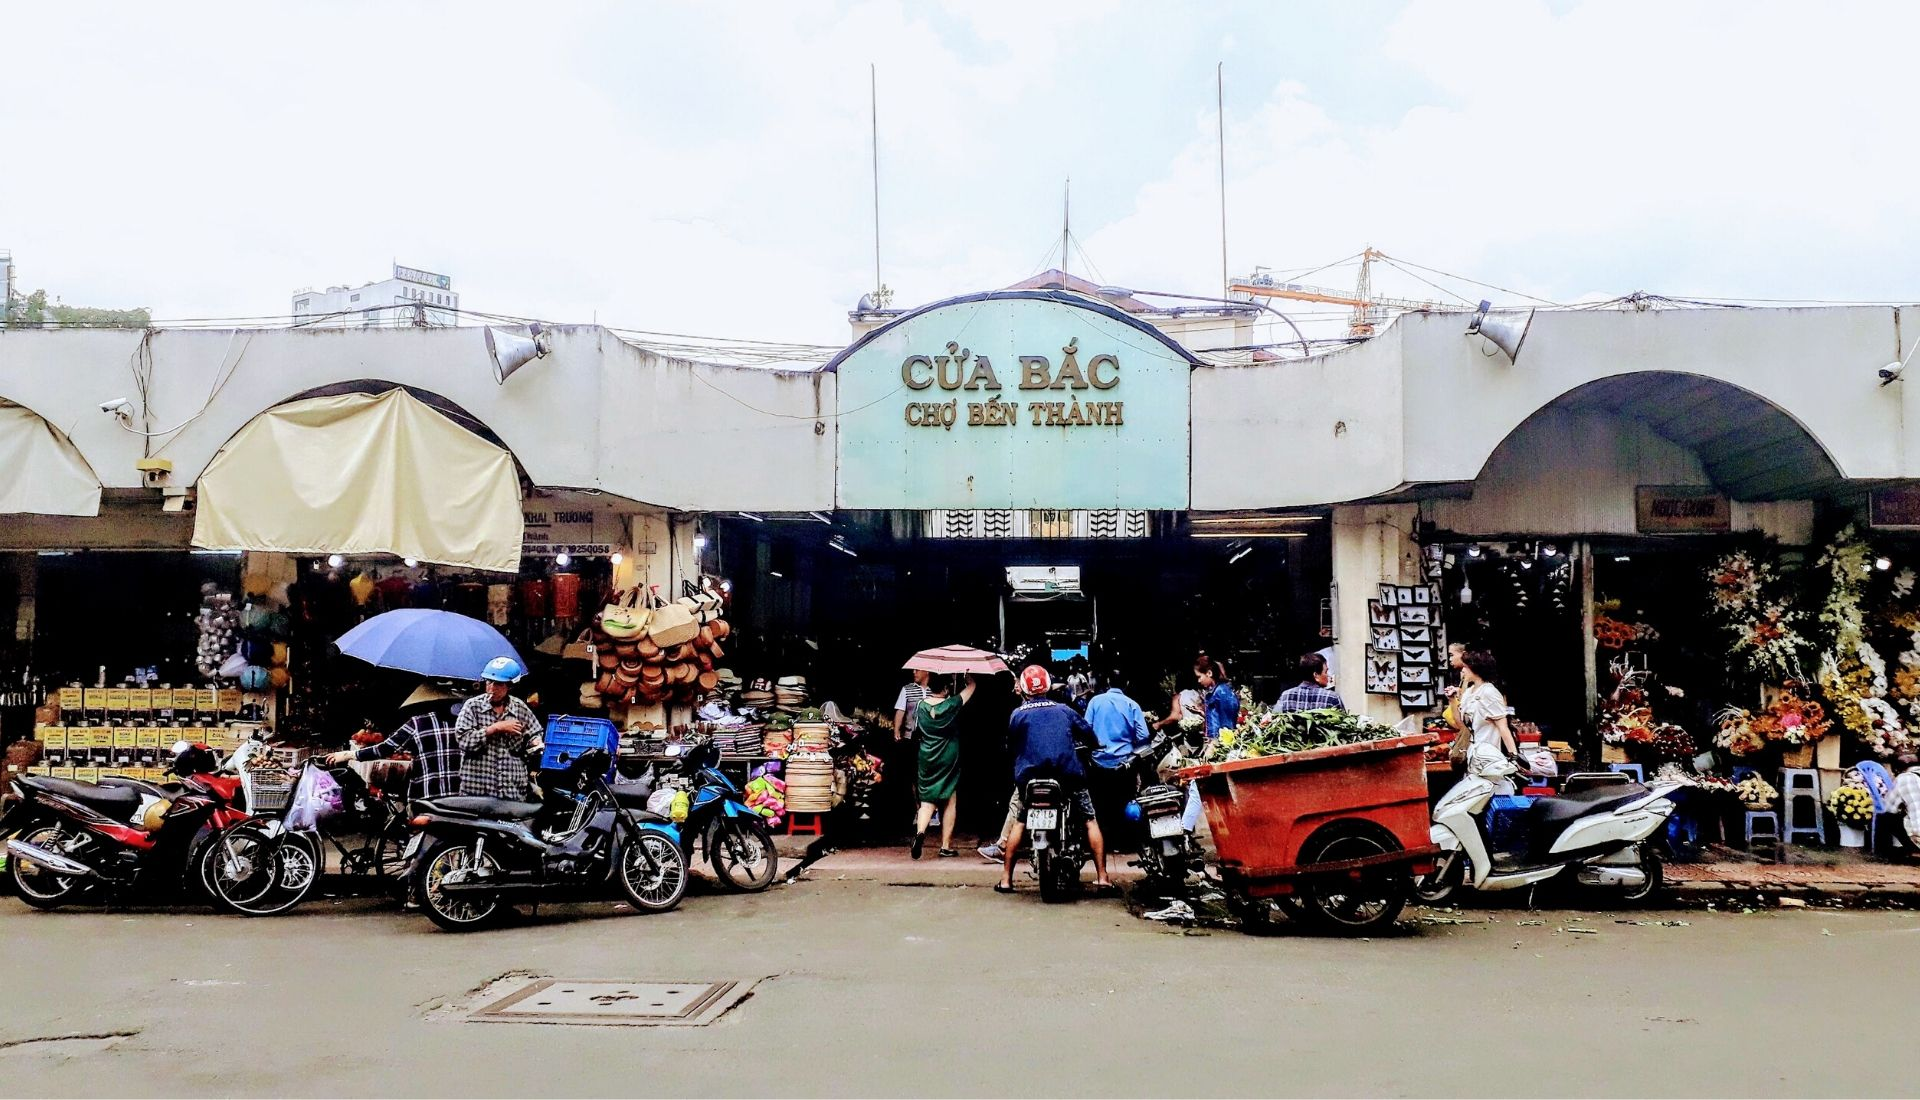 Ben Thanh Market - 5 days in Saigon